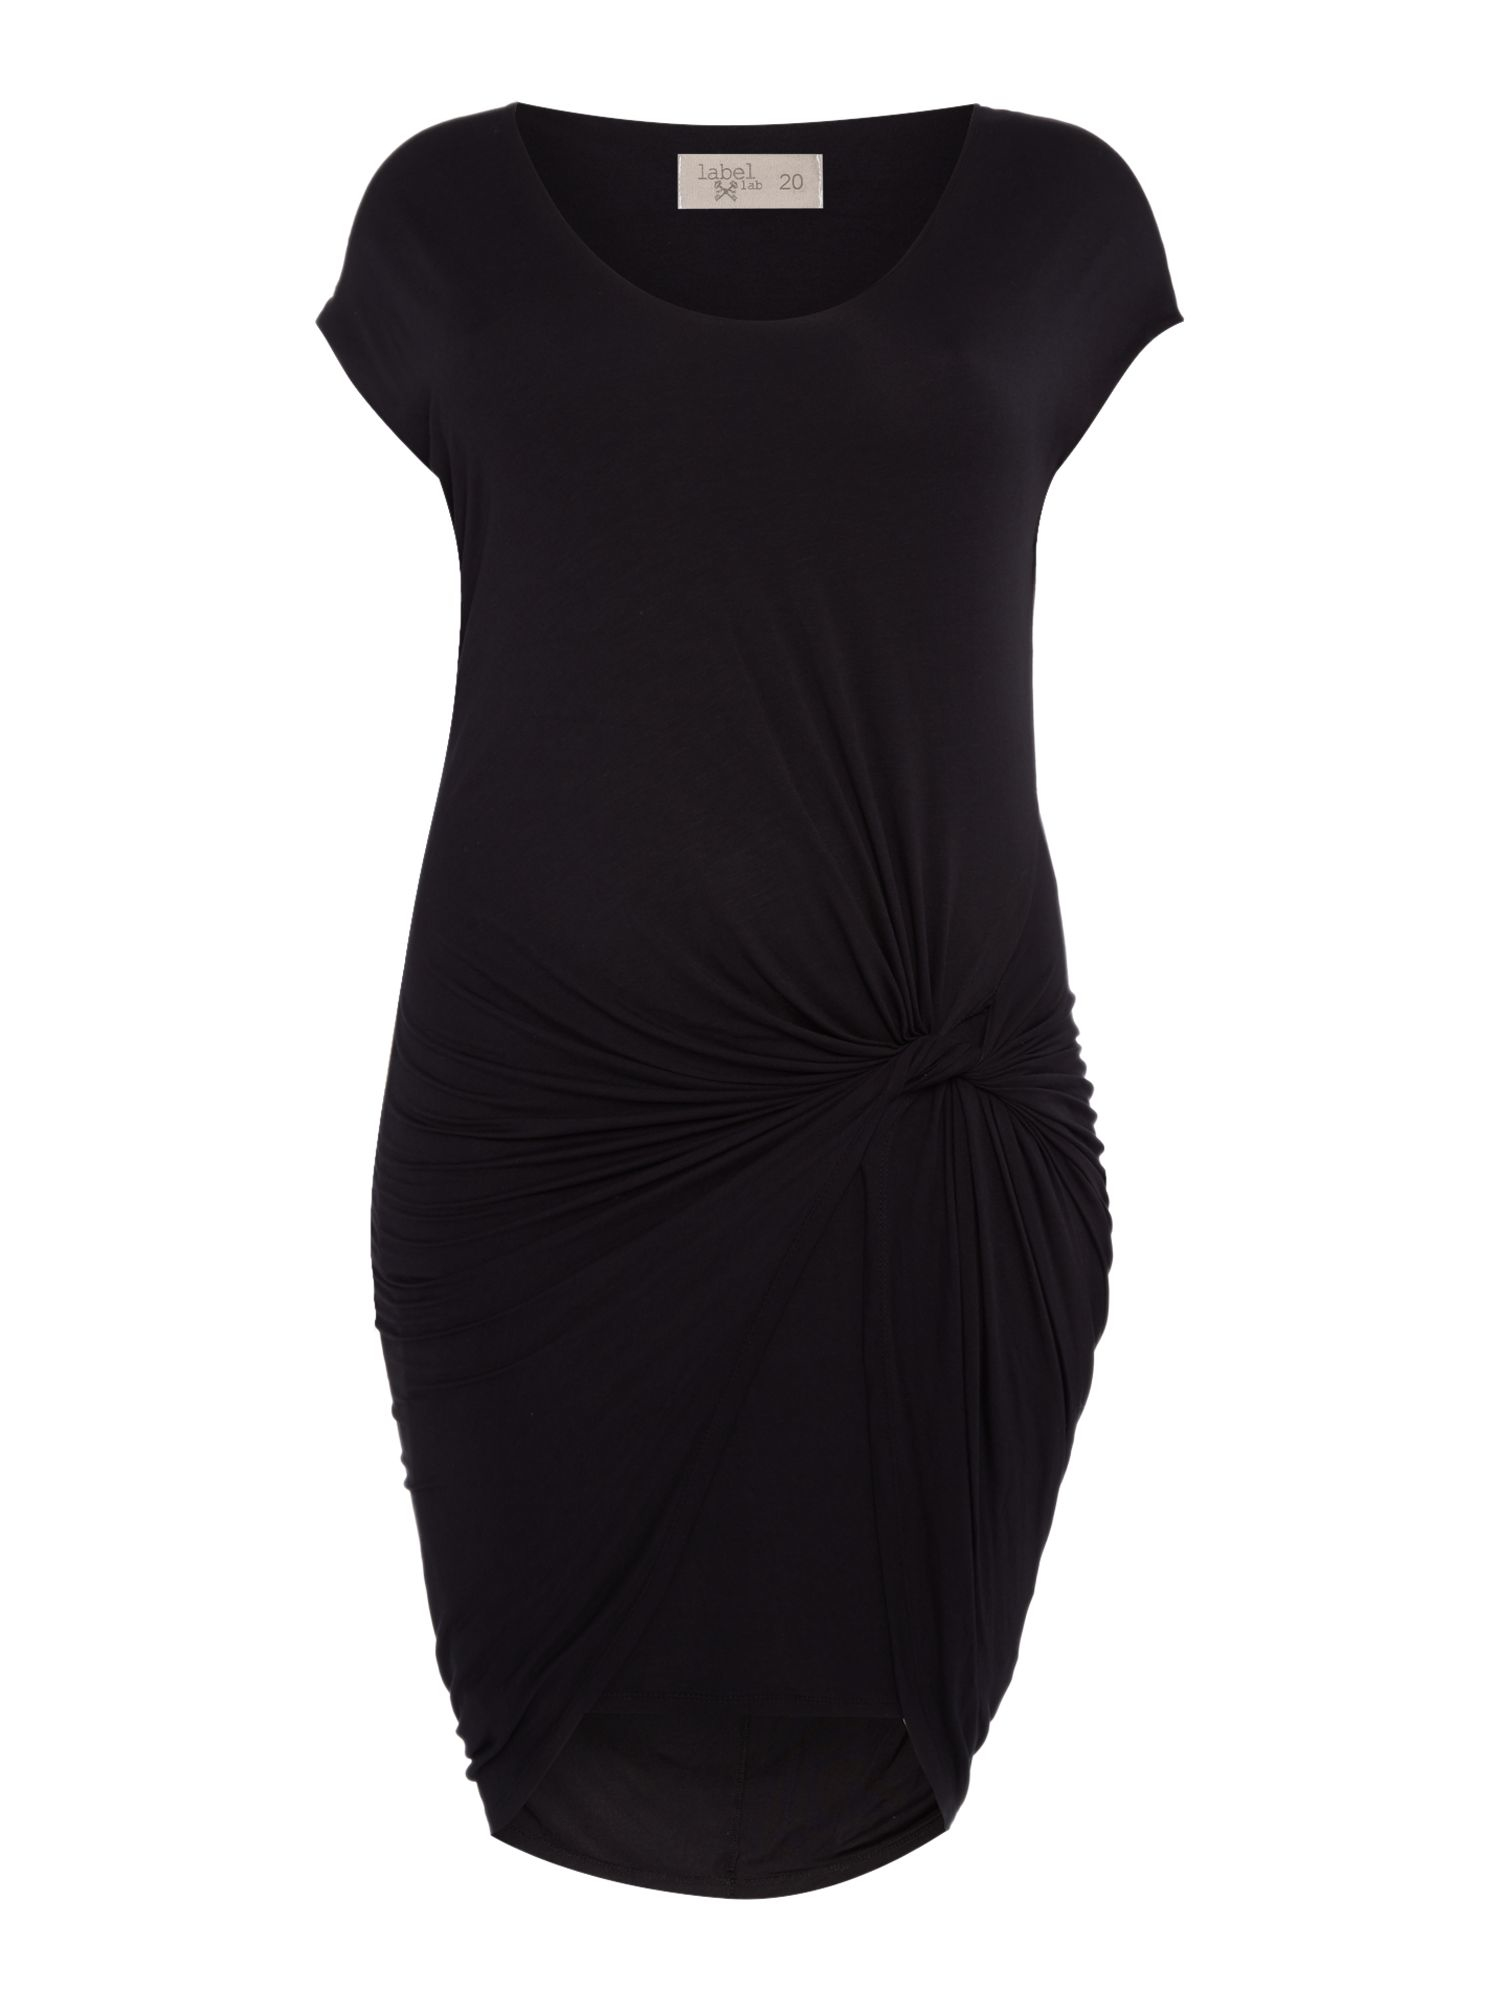 Black dress size 0 labs